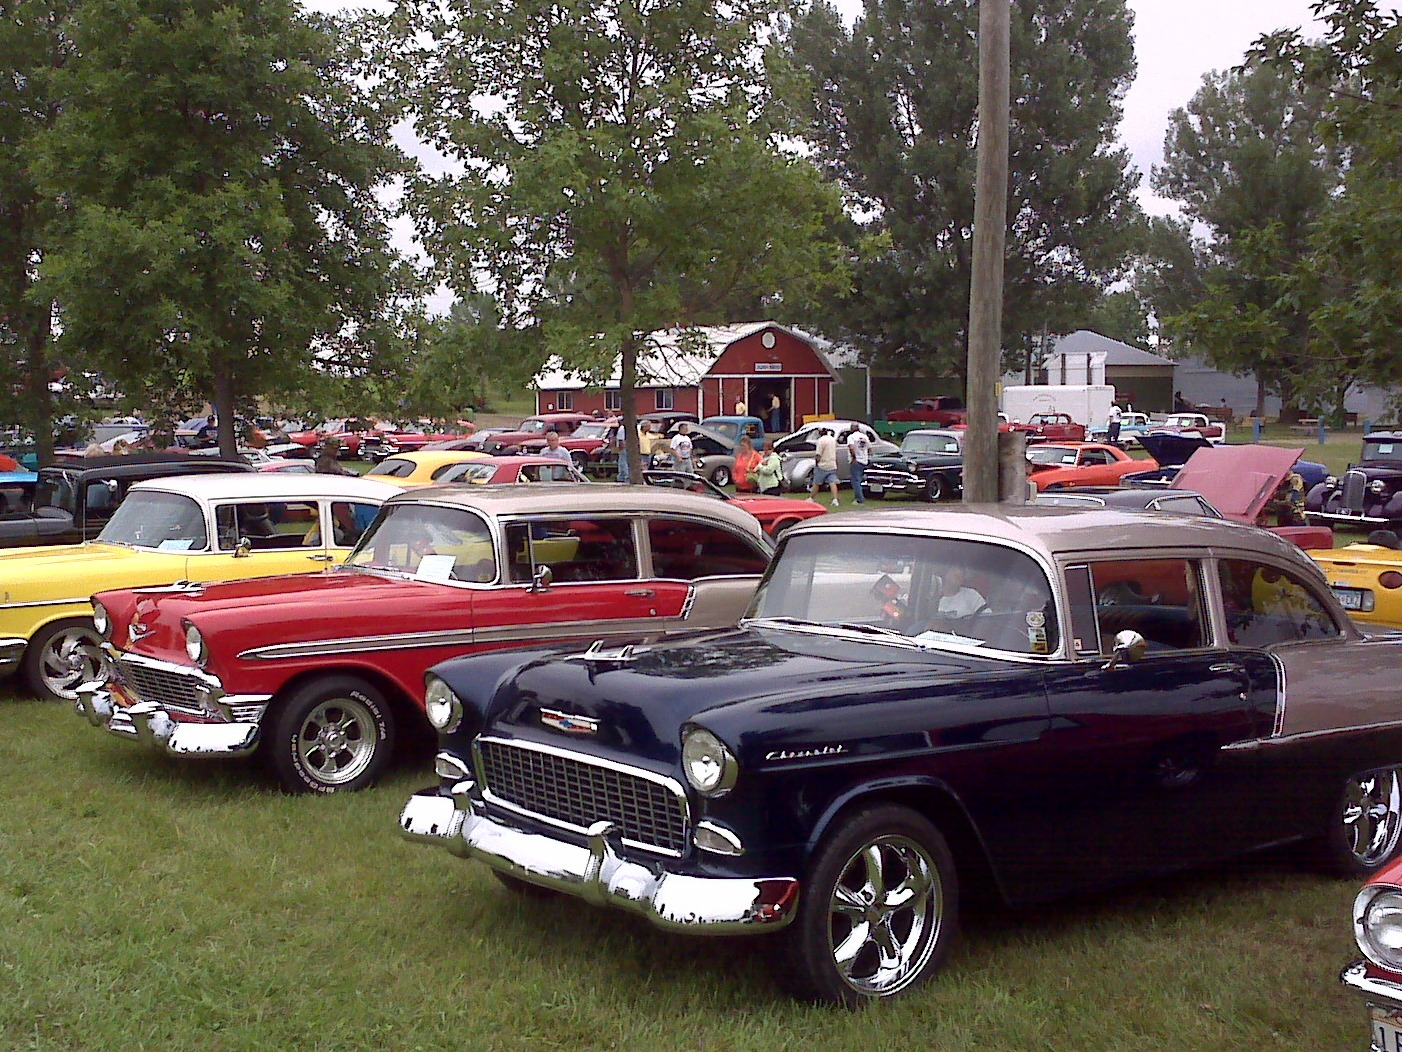 File:35th Classic Car Show in Fergus Falls Otter Tail County Minnesota.jpg